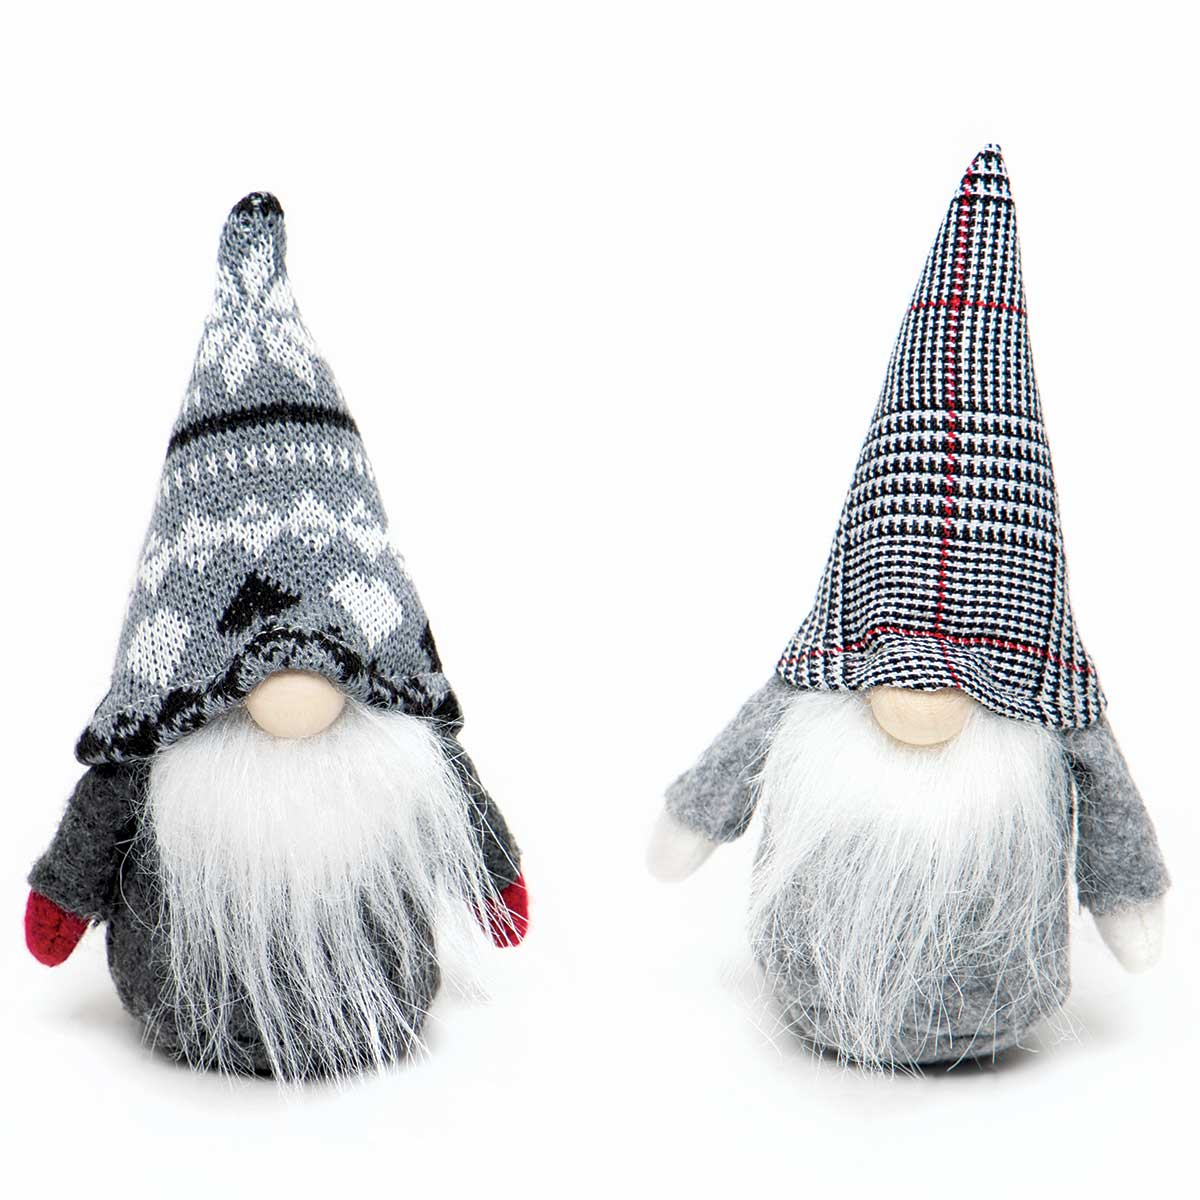 WEE GNOME ORNAMENT GREY/WHITE WITH PLAID/POINSETTIA